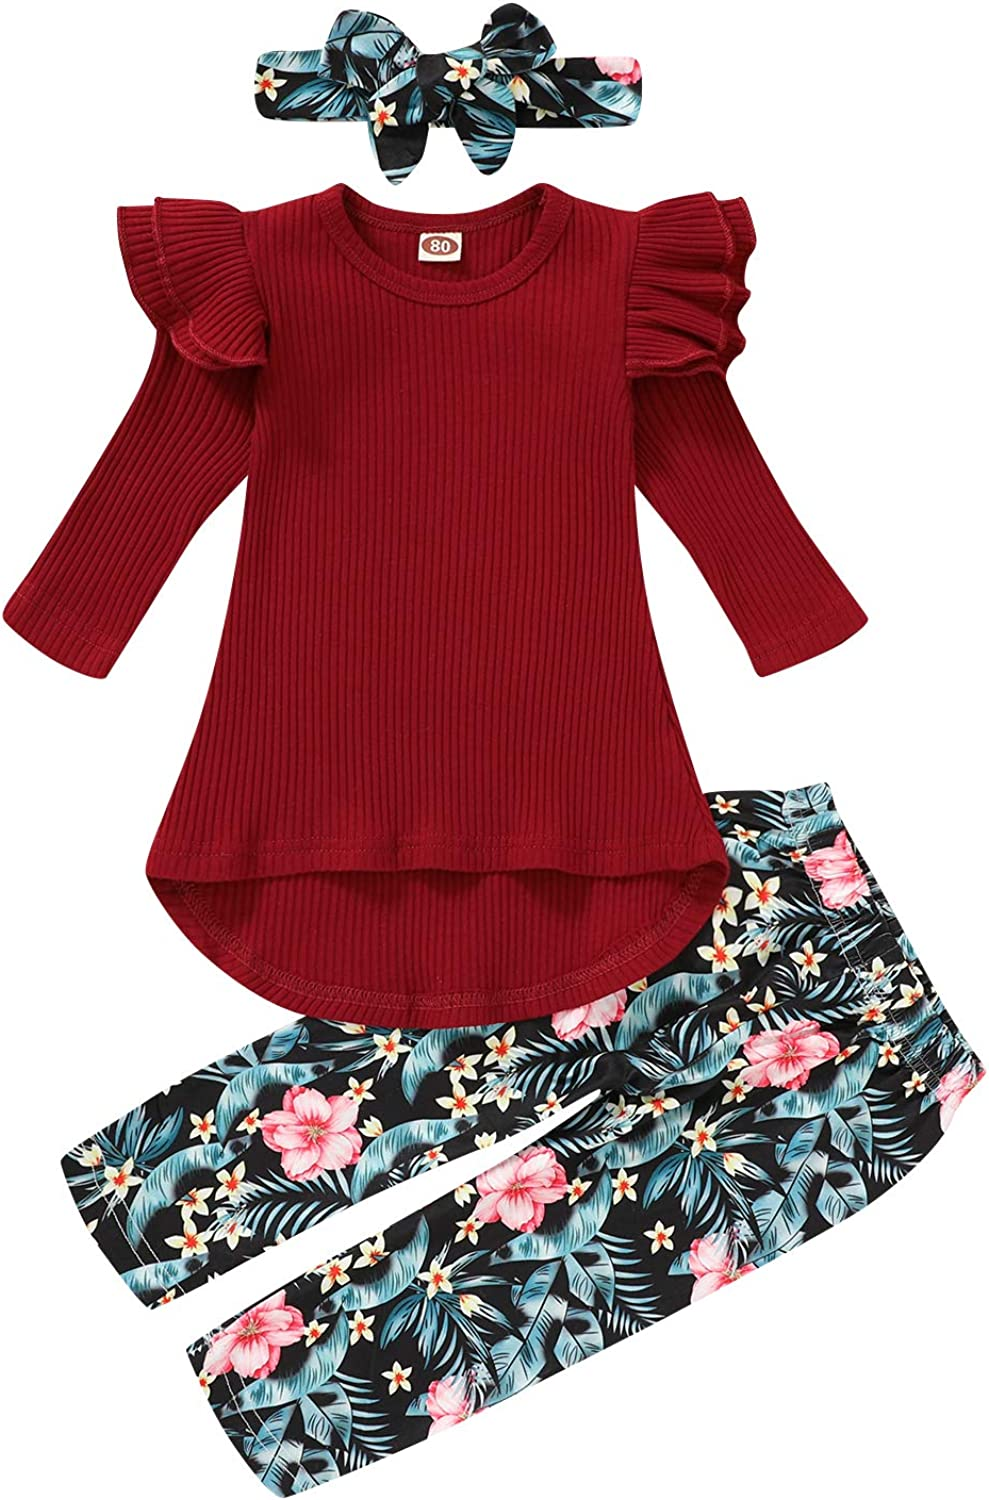 Toddler Girl Outfits Baby Girls Clothes Sets Autumn Irregular Tops Floral Pants with Headband Outfits